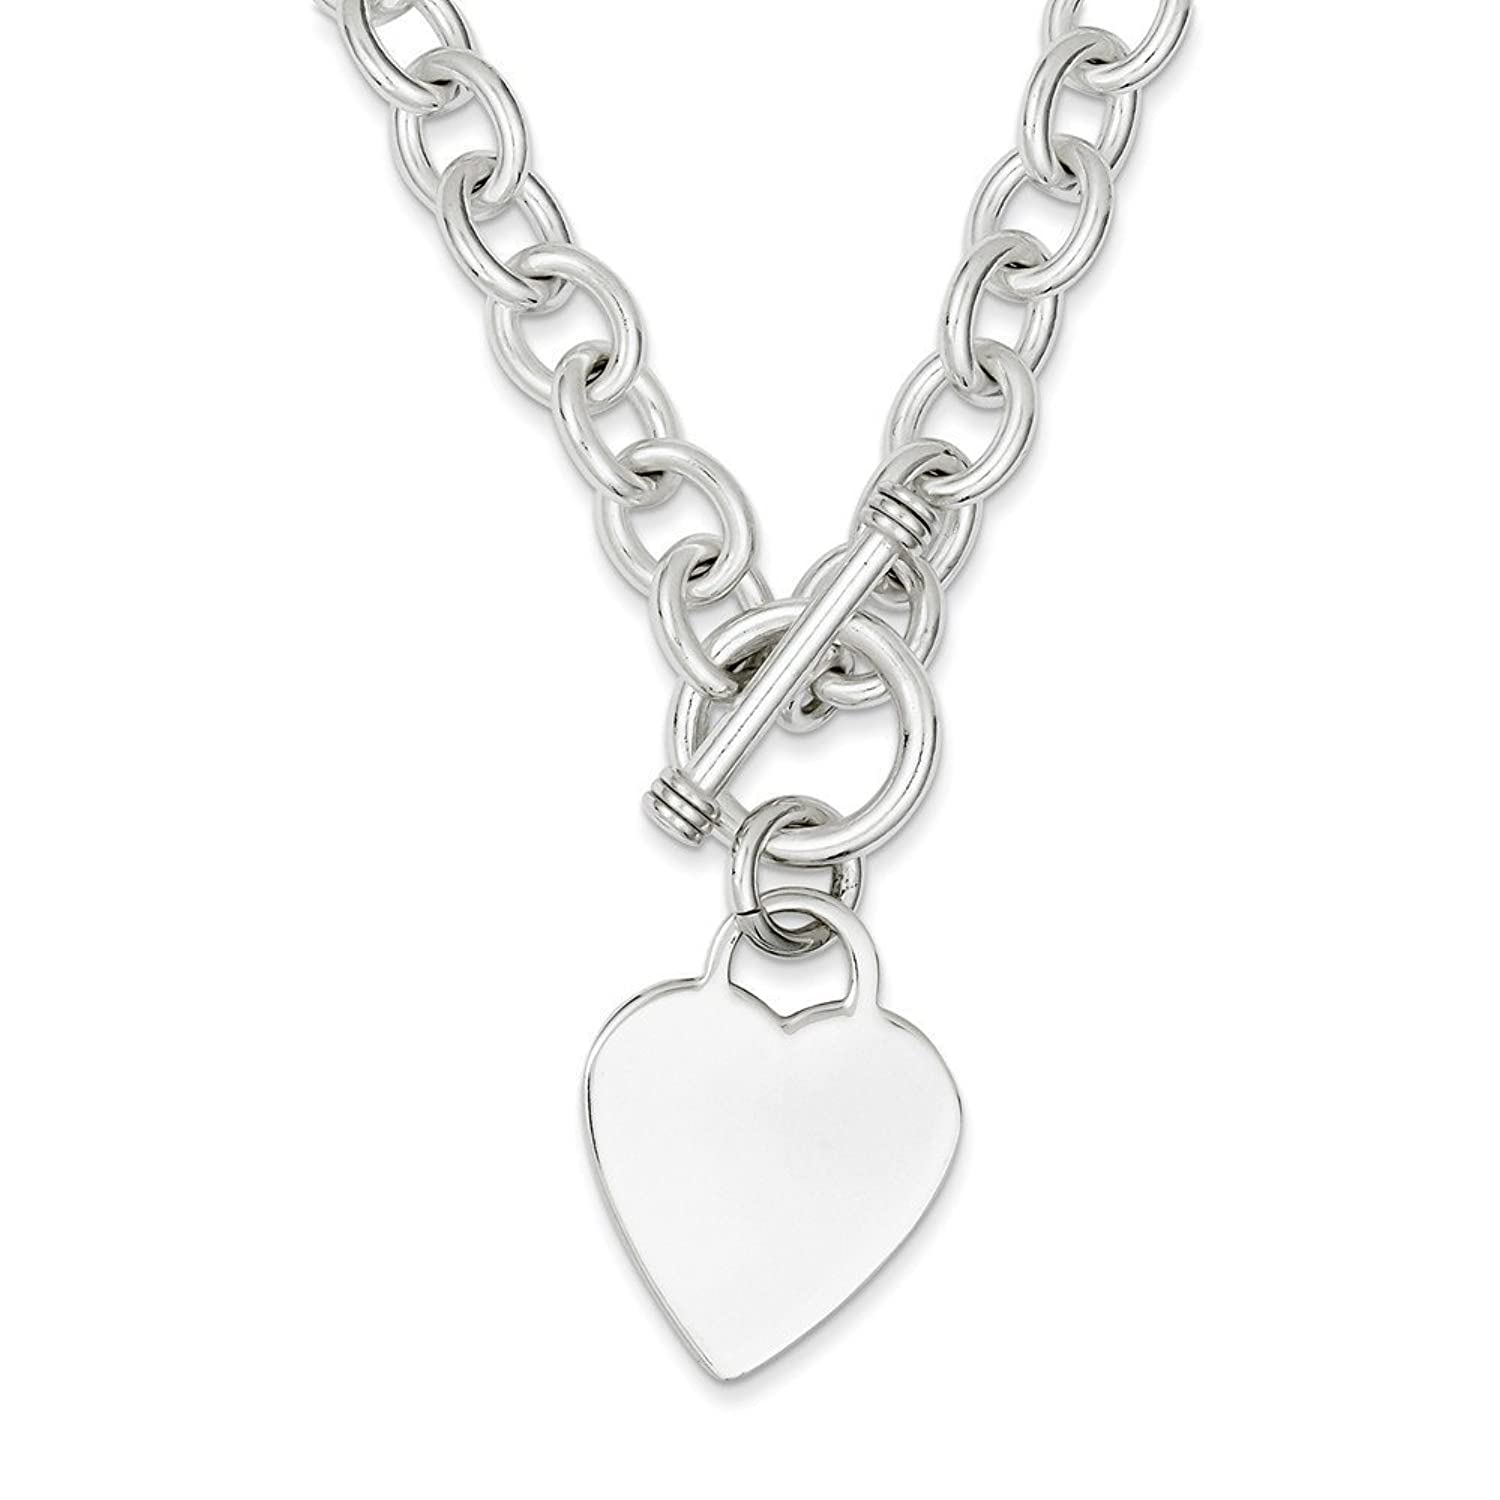 Sterling Silver Heart Fancy Link Toggle Necklace 18 Inches